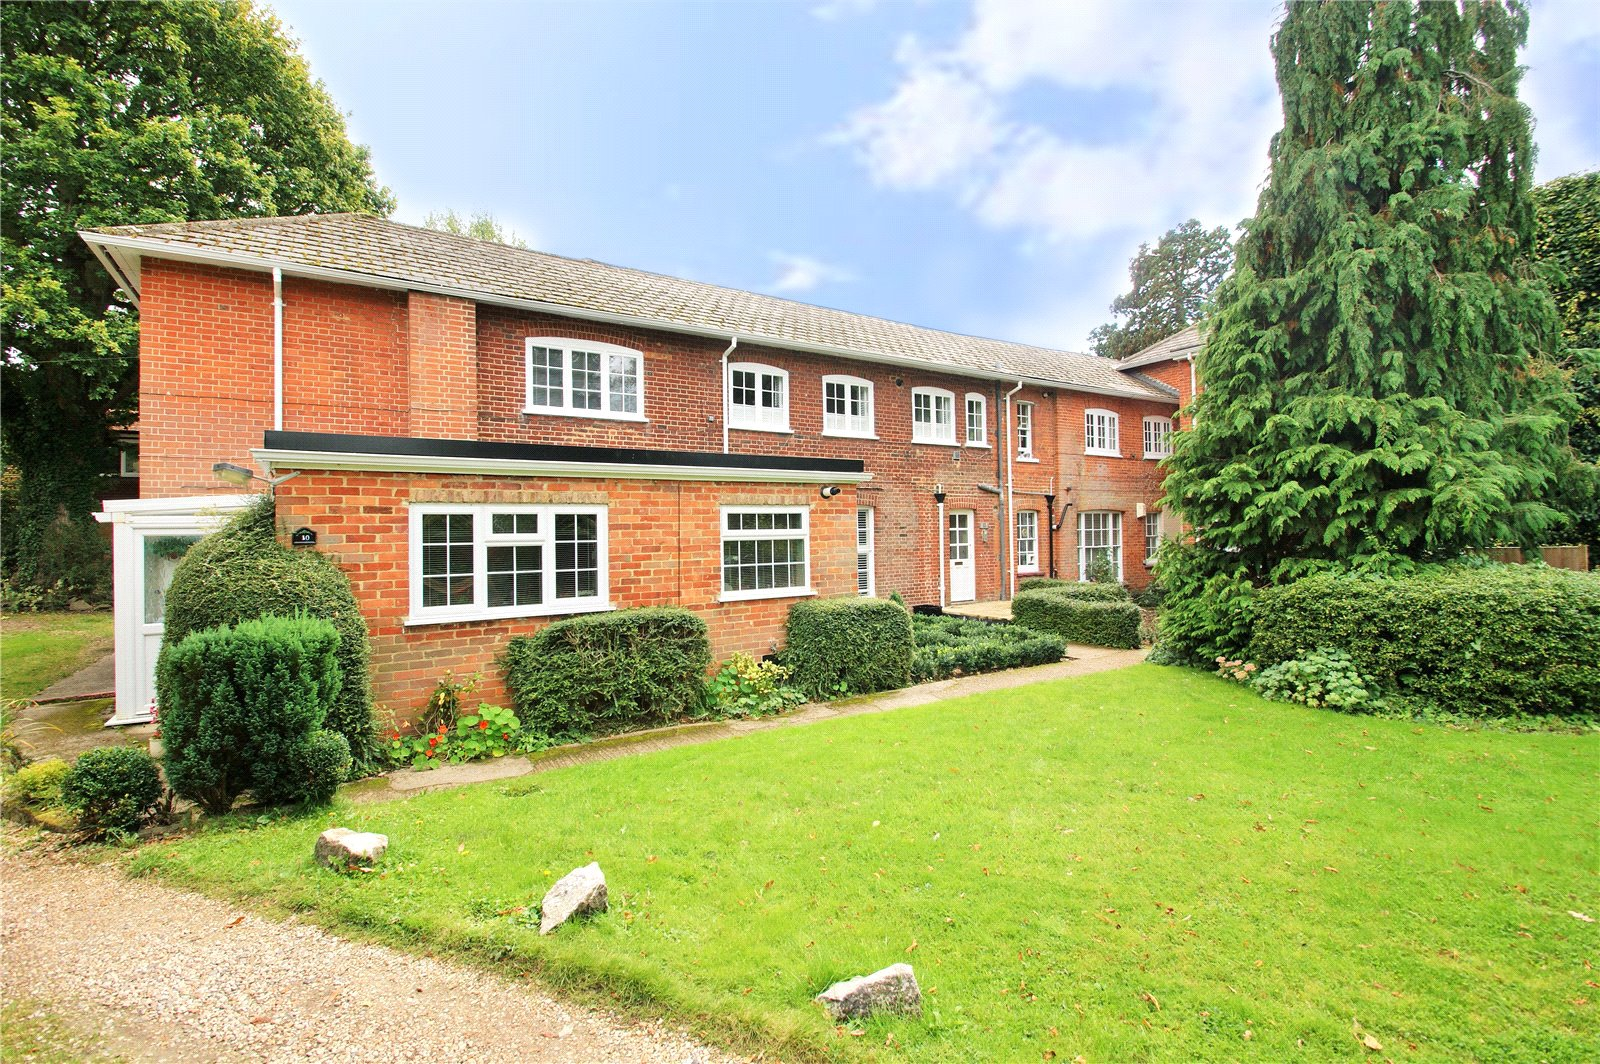 2 Bedrooms Apartment Flat for sale in Frog Hall, Frog Hall Drive, Wokingham, Berkshire, RG40